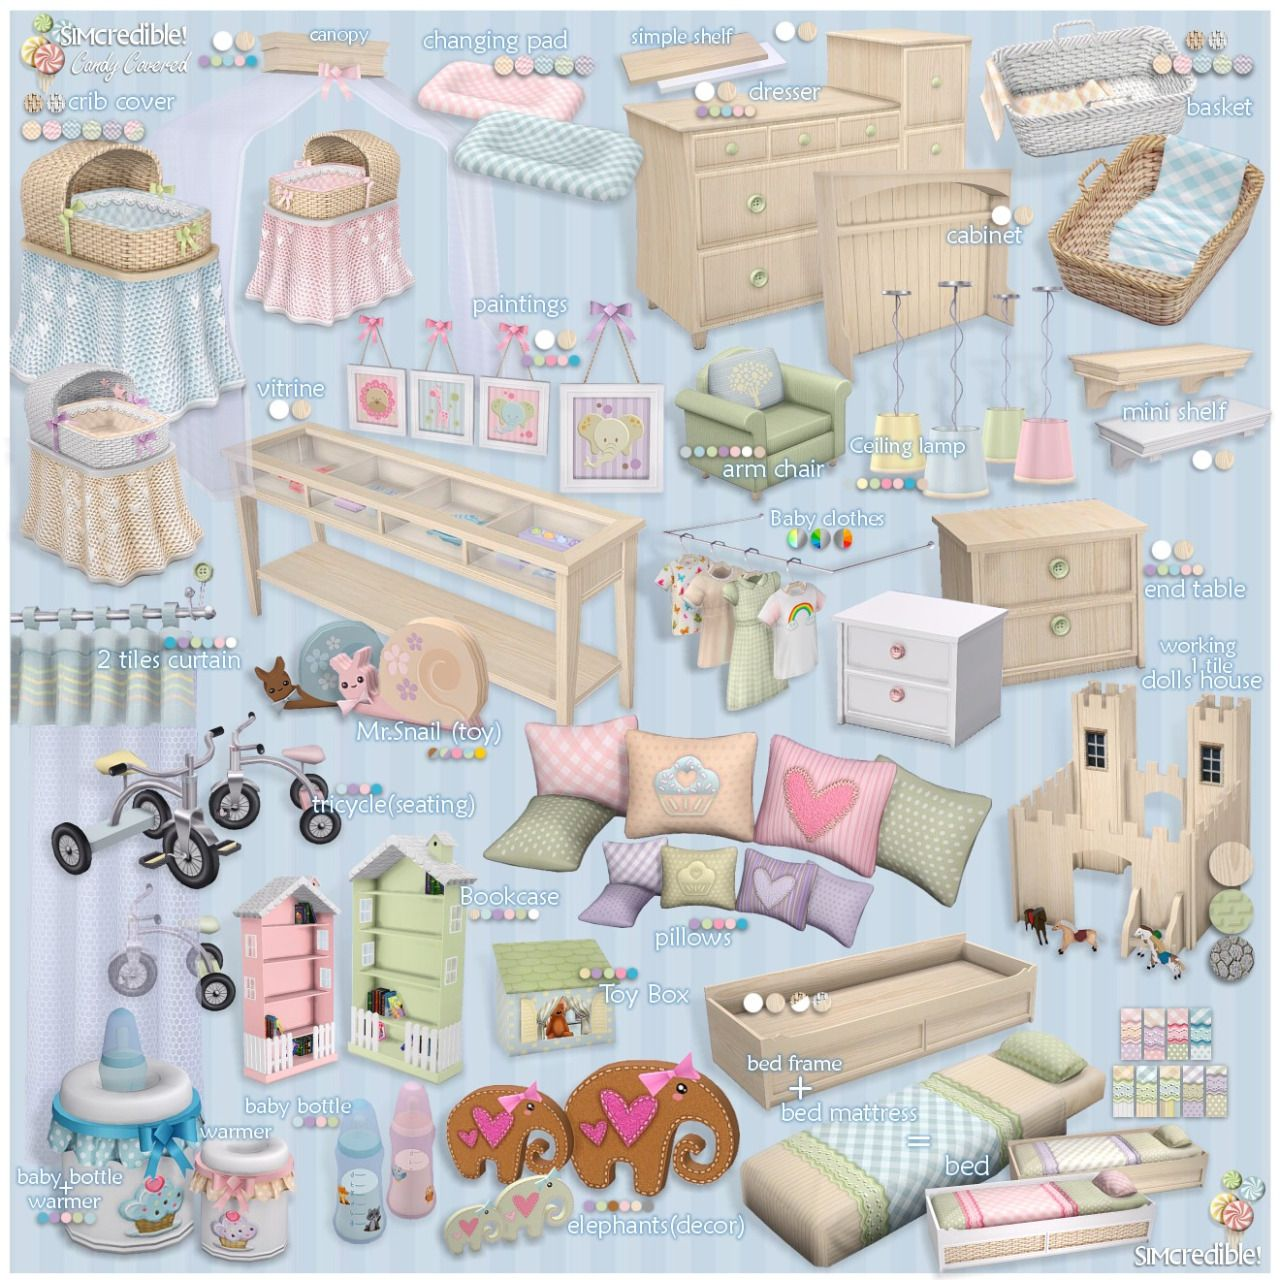 Lana CC Finds - Candy Covered by SIMcredible!   TS4 Objects ...